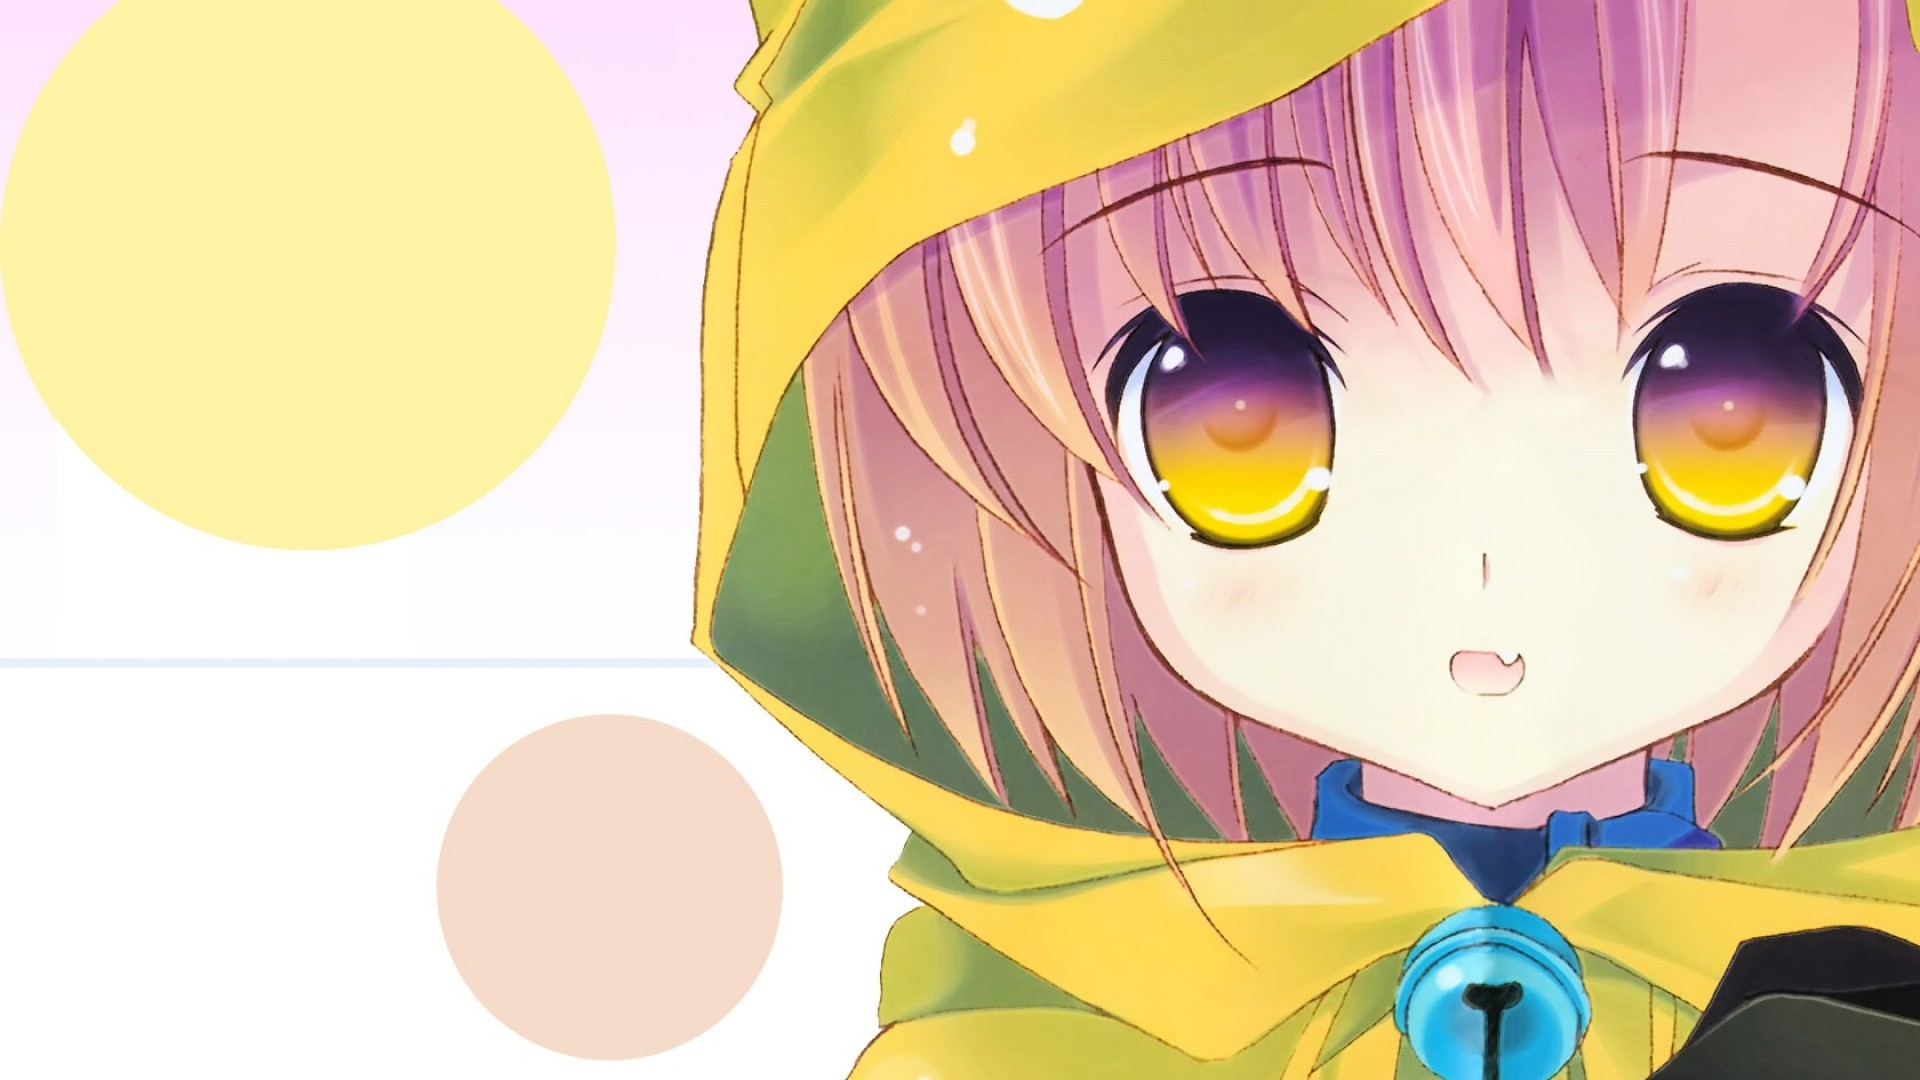 Hoodie Cute Anime Girl Desktop wallpaper